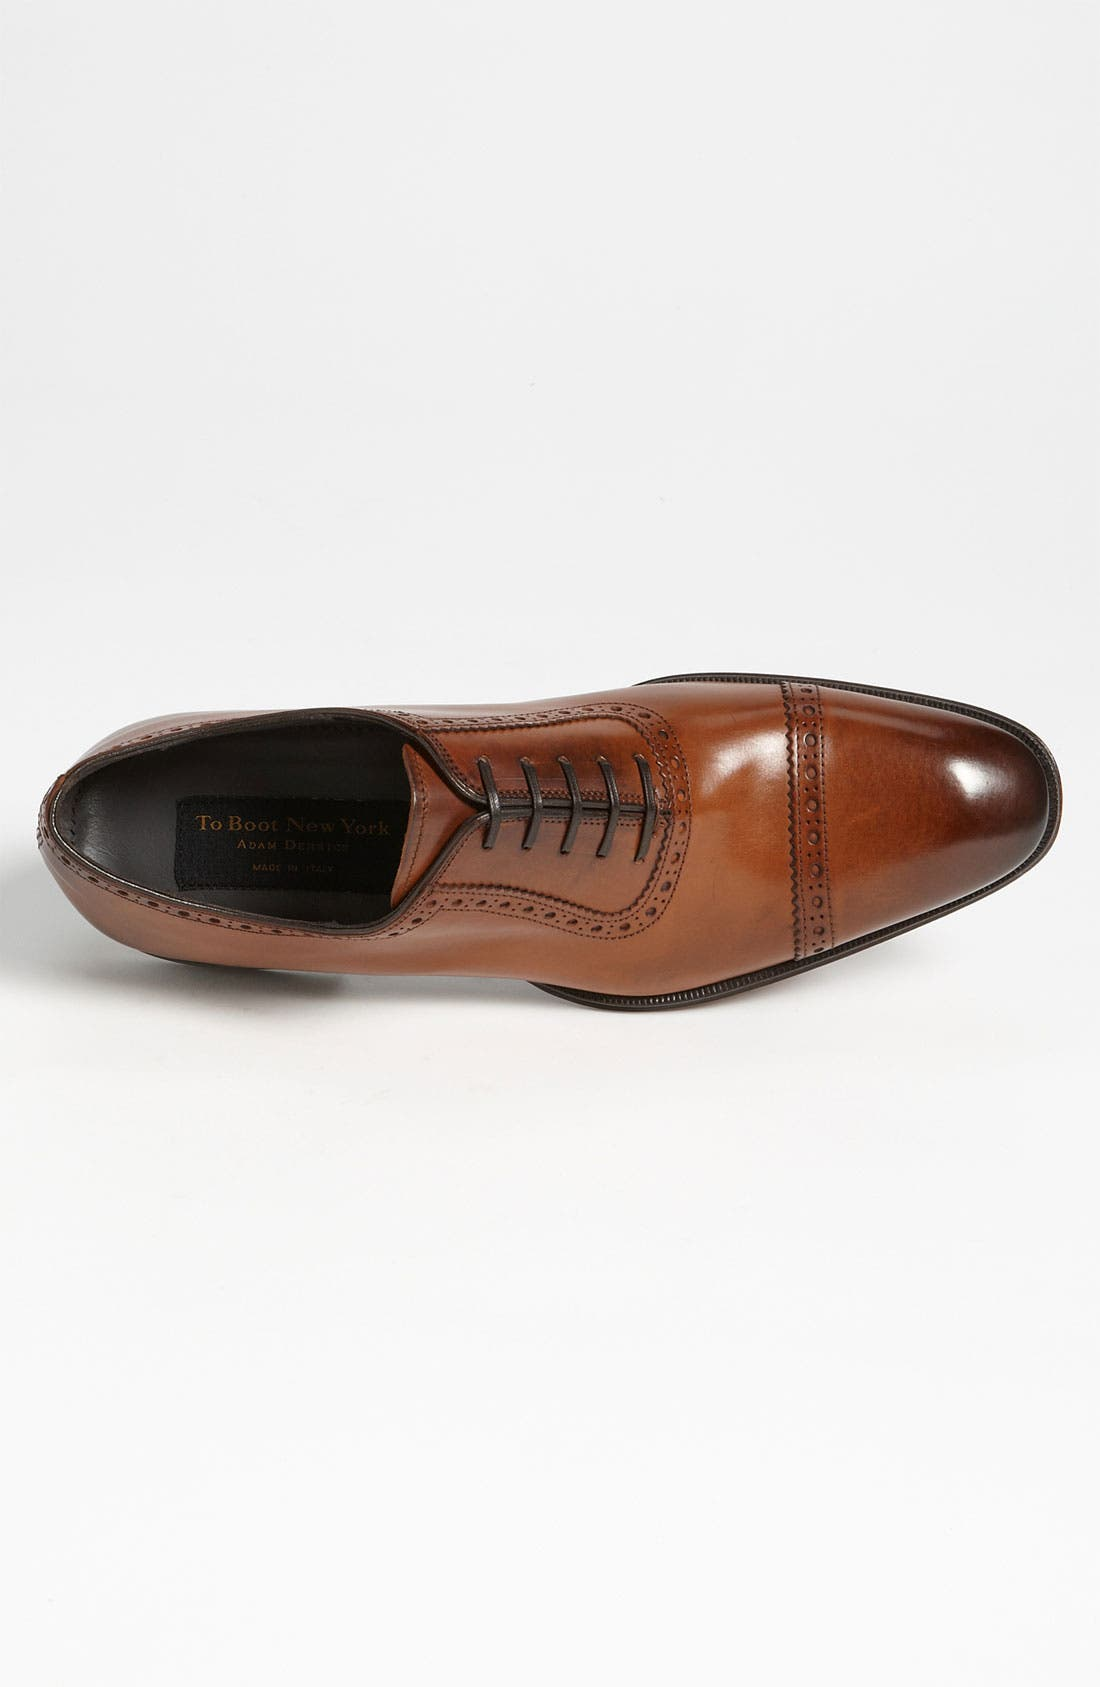 Alternate Image 3  - To Boot New York 'Warwick' Cap Toe Oxford